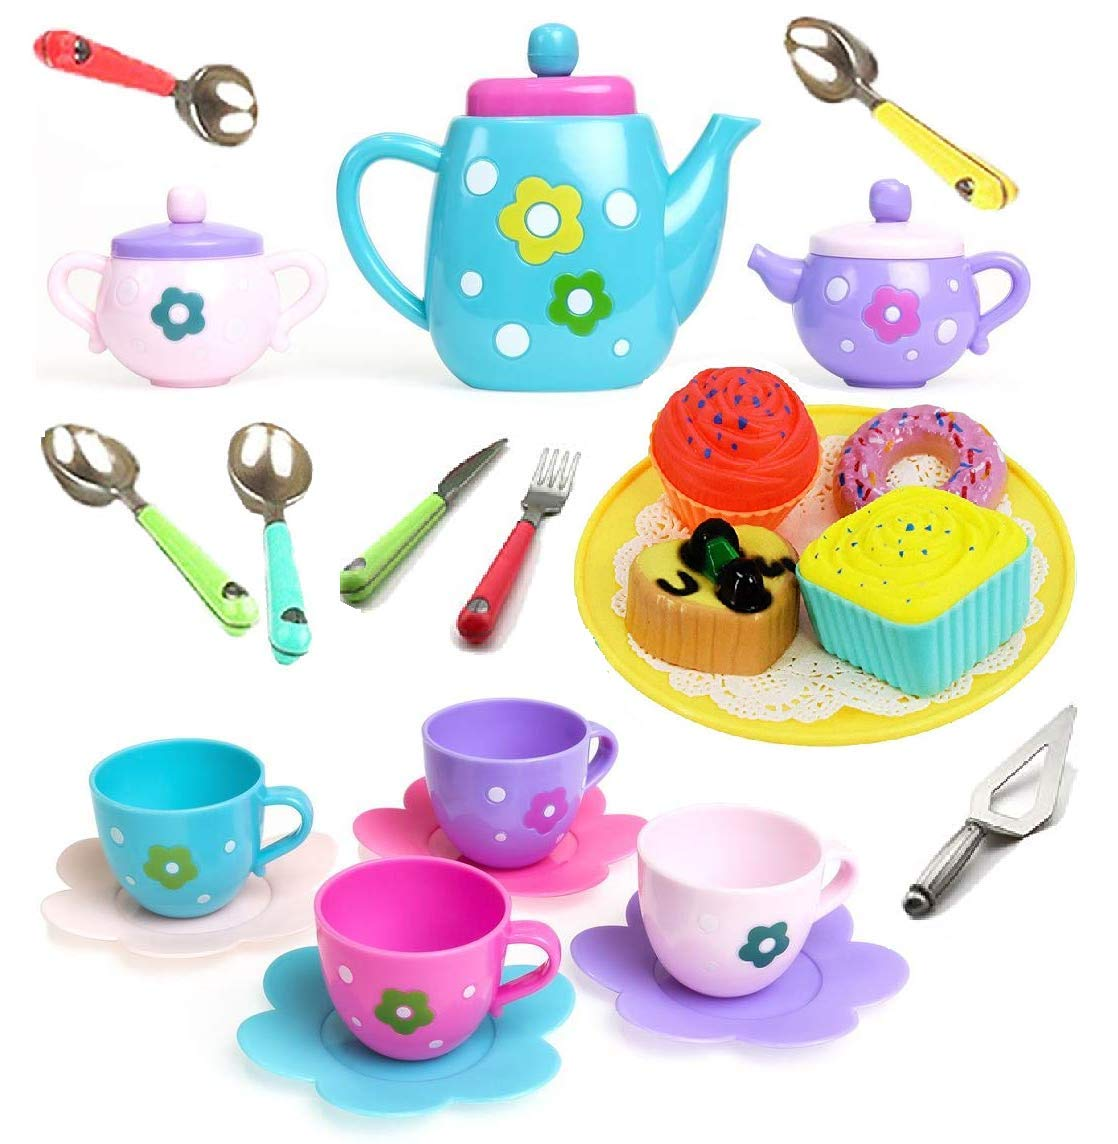 SUPER TOY Tea Party Pretend Play Kitchen Utensils Play Set for Kids